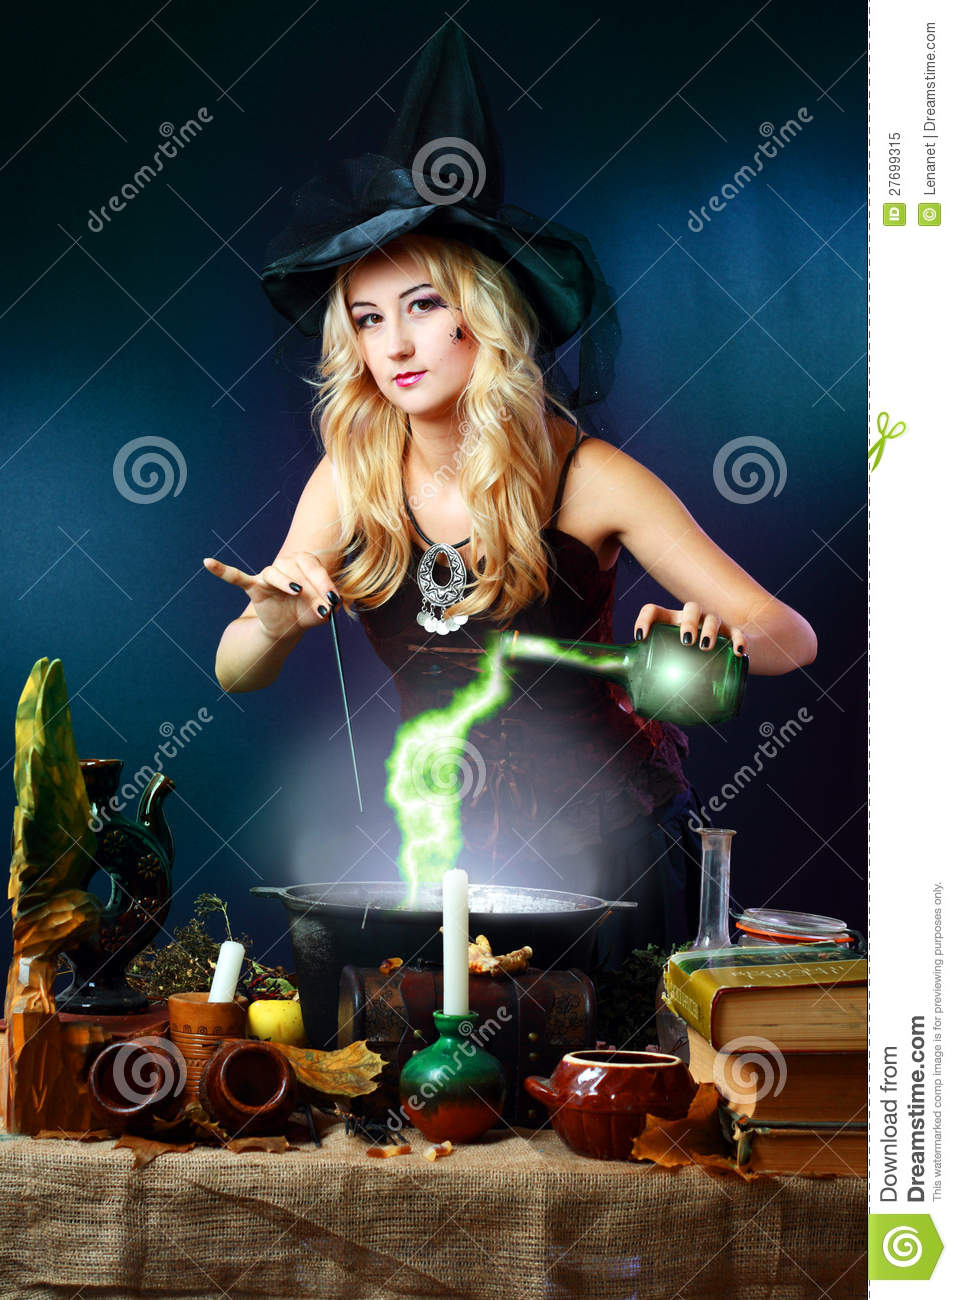 Witch Making Potion Royalty Free Stock Photo - Image: 27699315